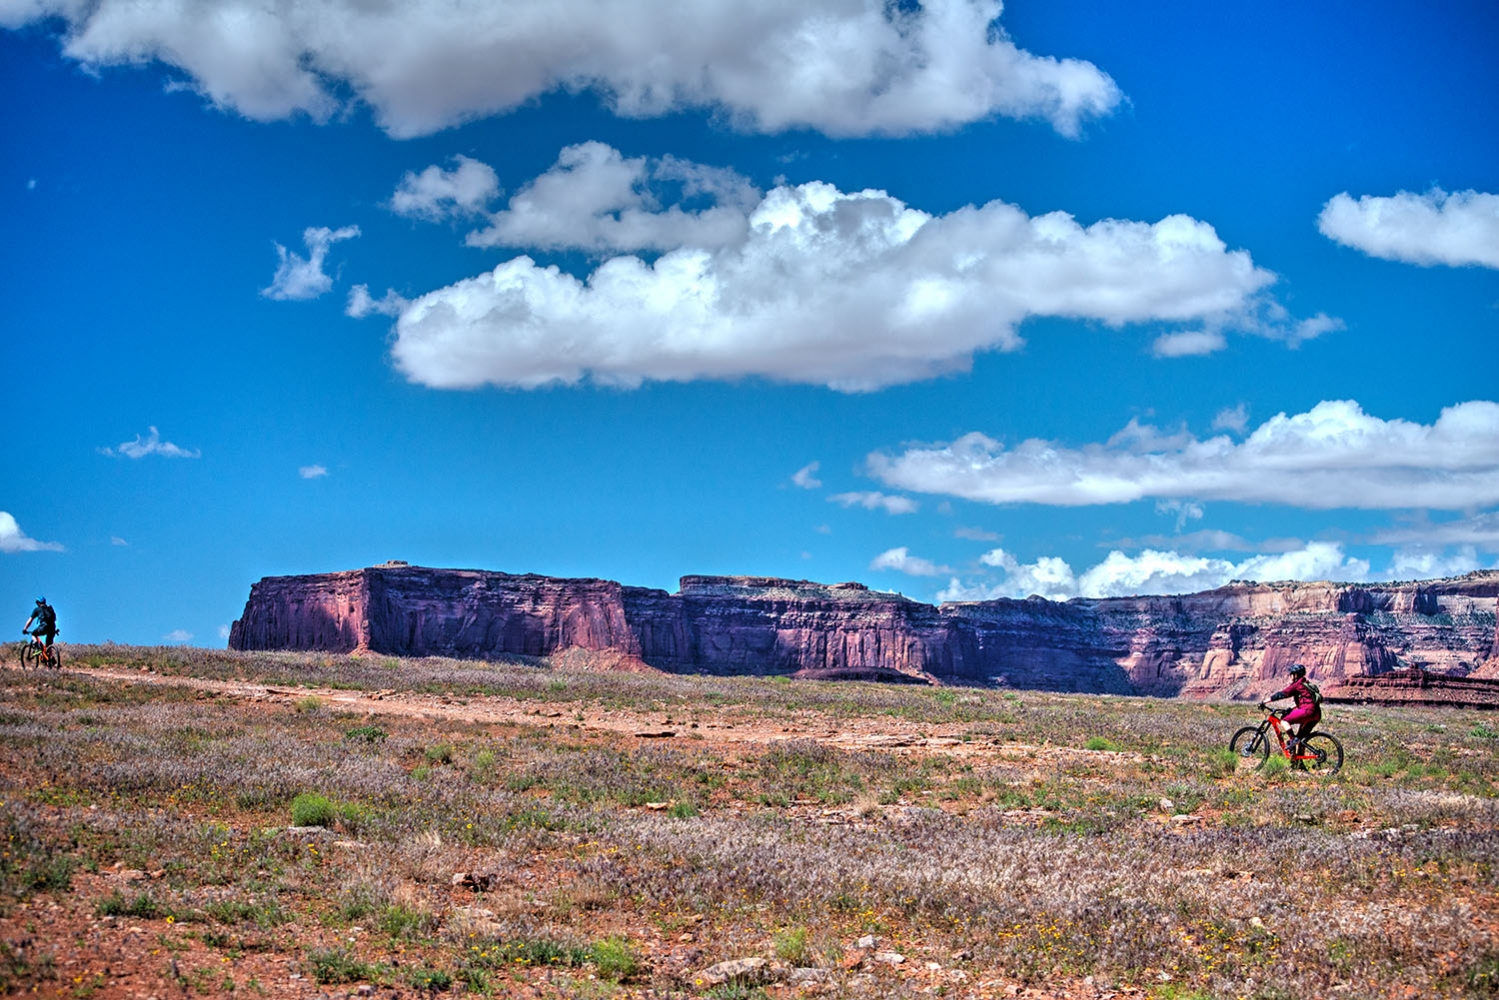 Canyonlands-National-Park-Full-Day-Guided-Mtb-Tour-2-On-Horizon-To-Lunch-1